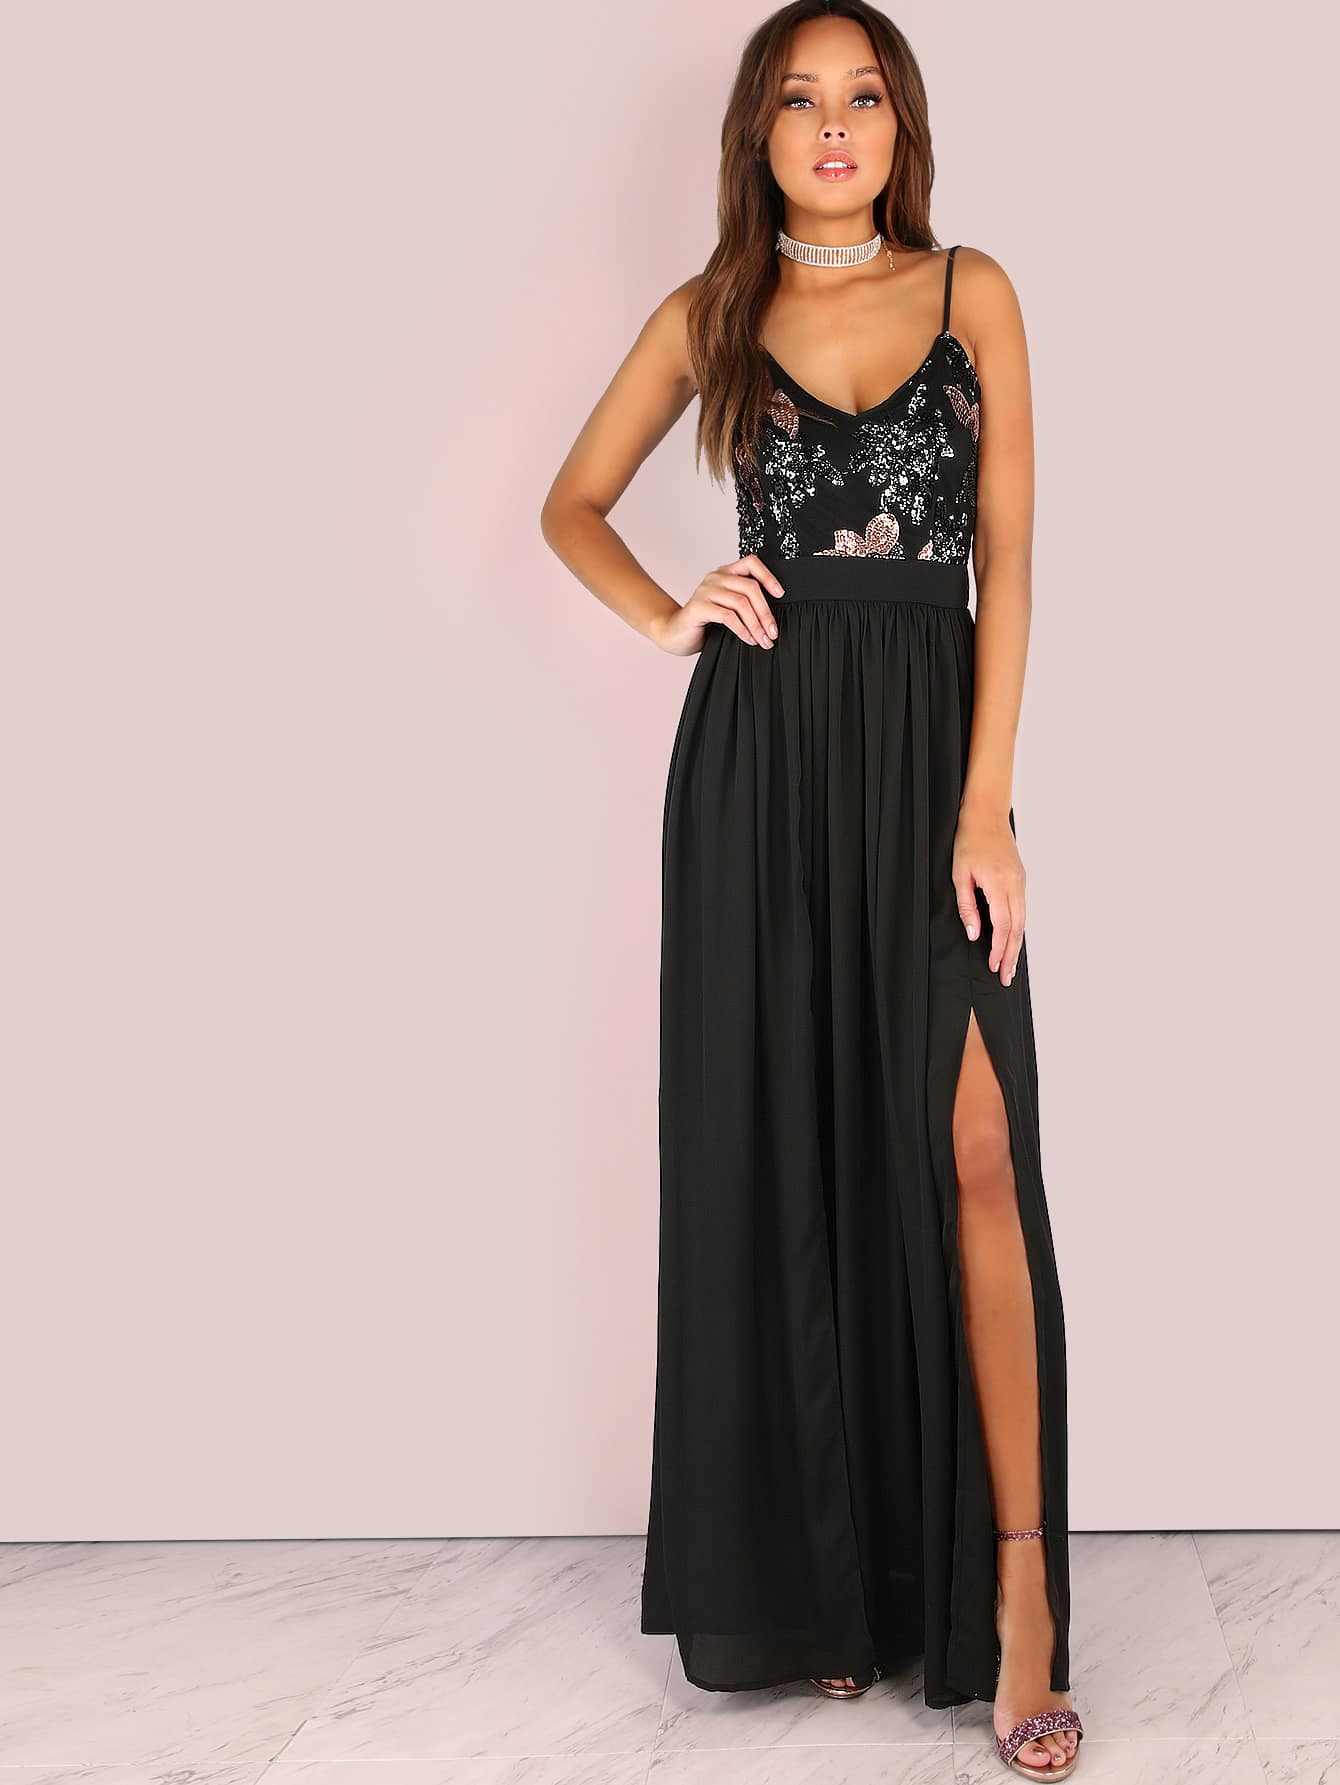 Sequin Floral Backless Maxi Double Slit Maxi Dress BLACK -SheIn ...